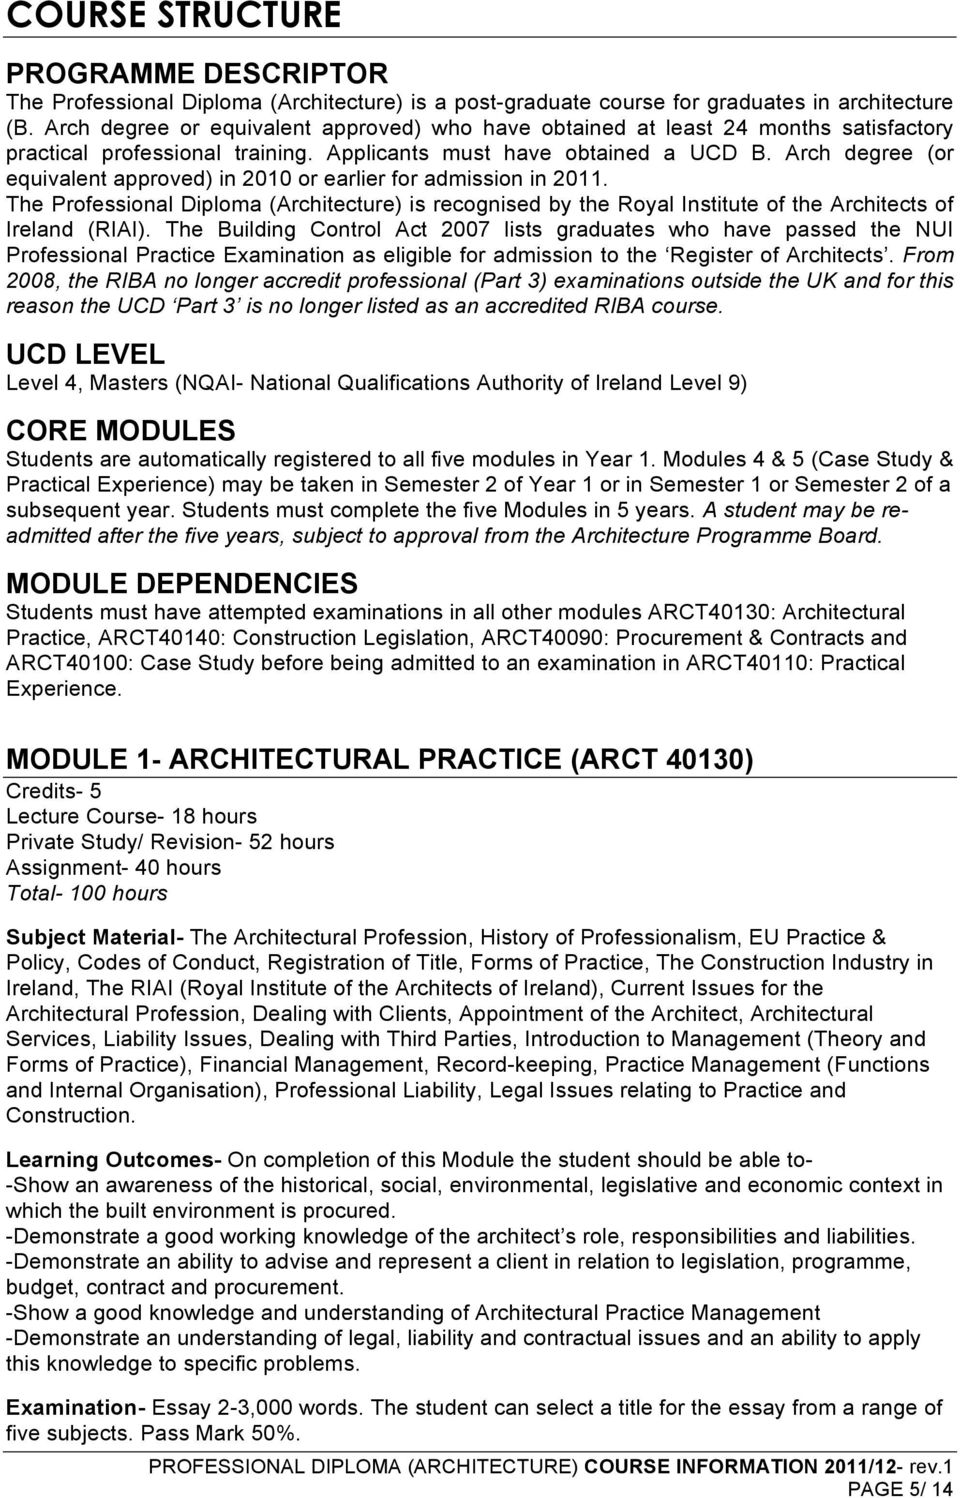 Arch degree (or equivalent approved) in 2010 or earlier for admission in 2011. The Professional Diploma (Architecture) is recognised by the Royal Institute of the Architects of Ireland (RIAI).